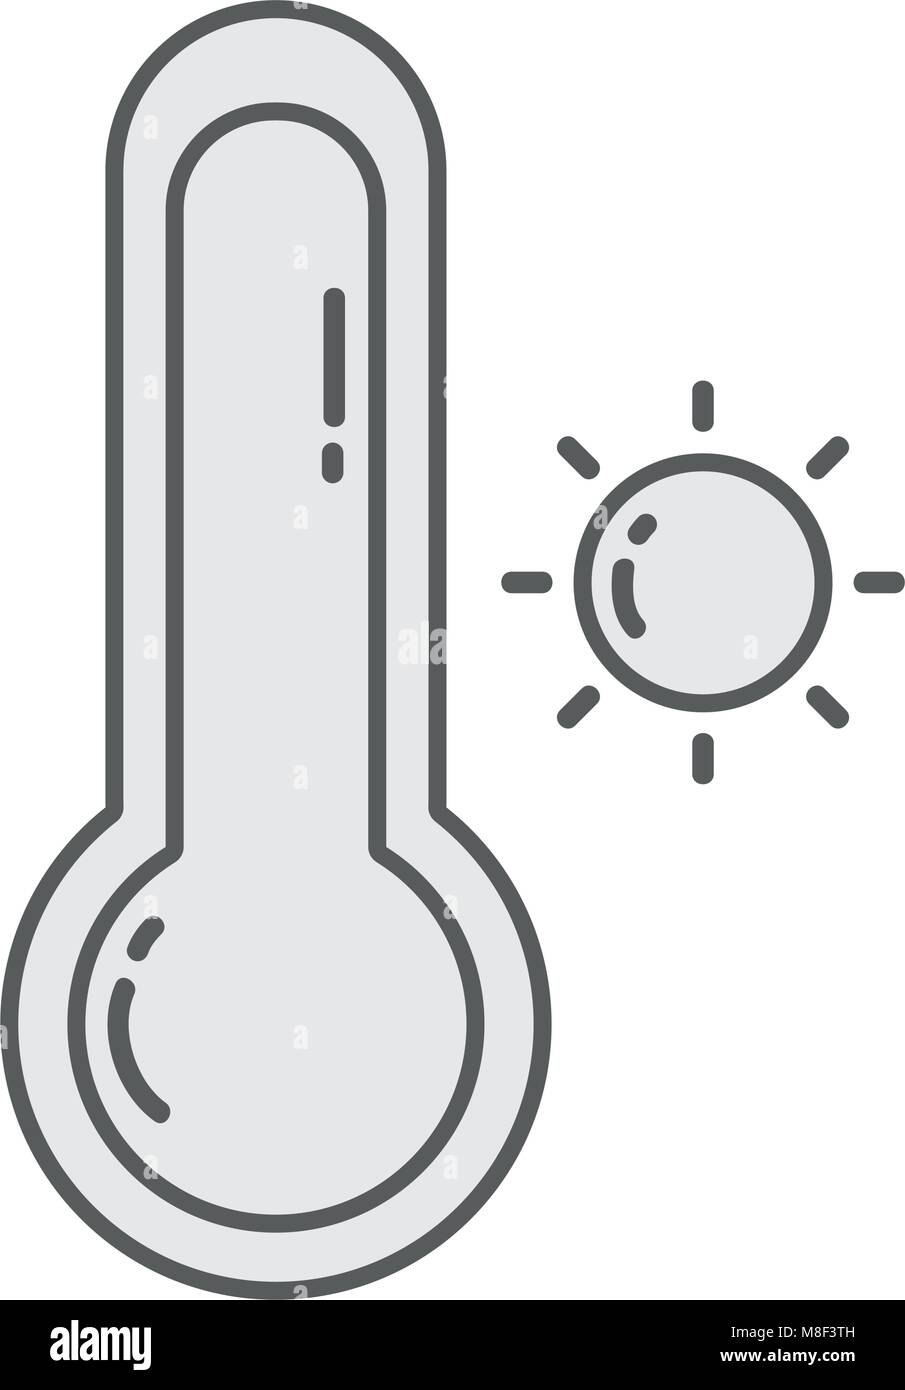 Weather Thermometer Symbol Stock Photos Weather Thermometer Symbol